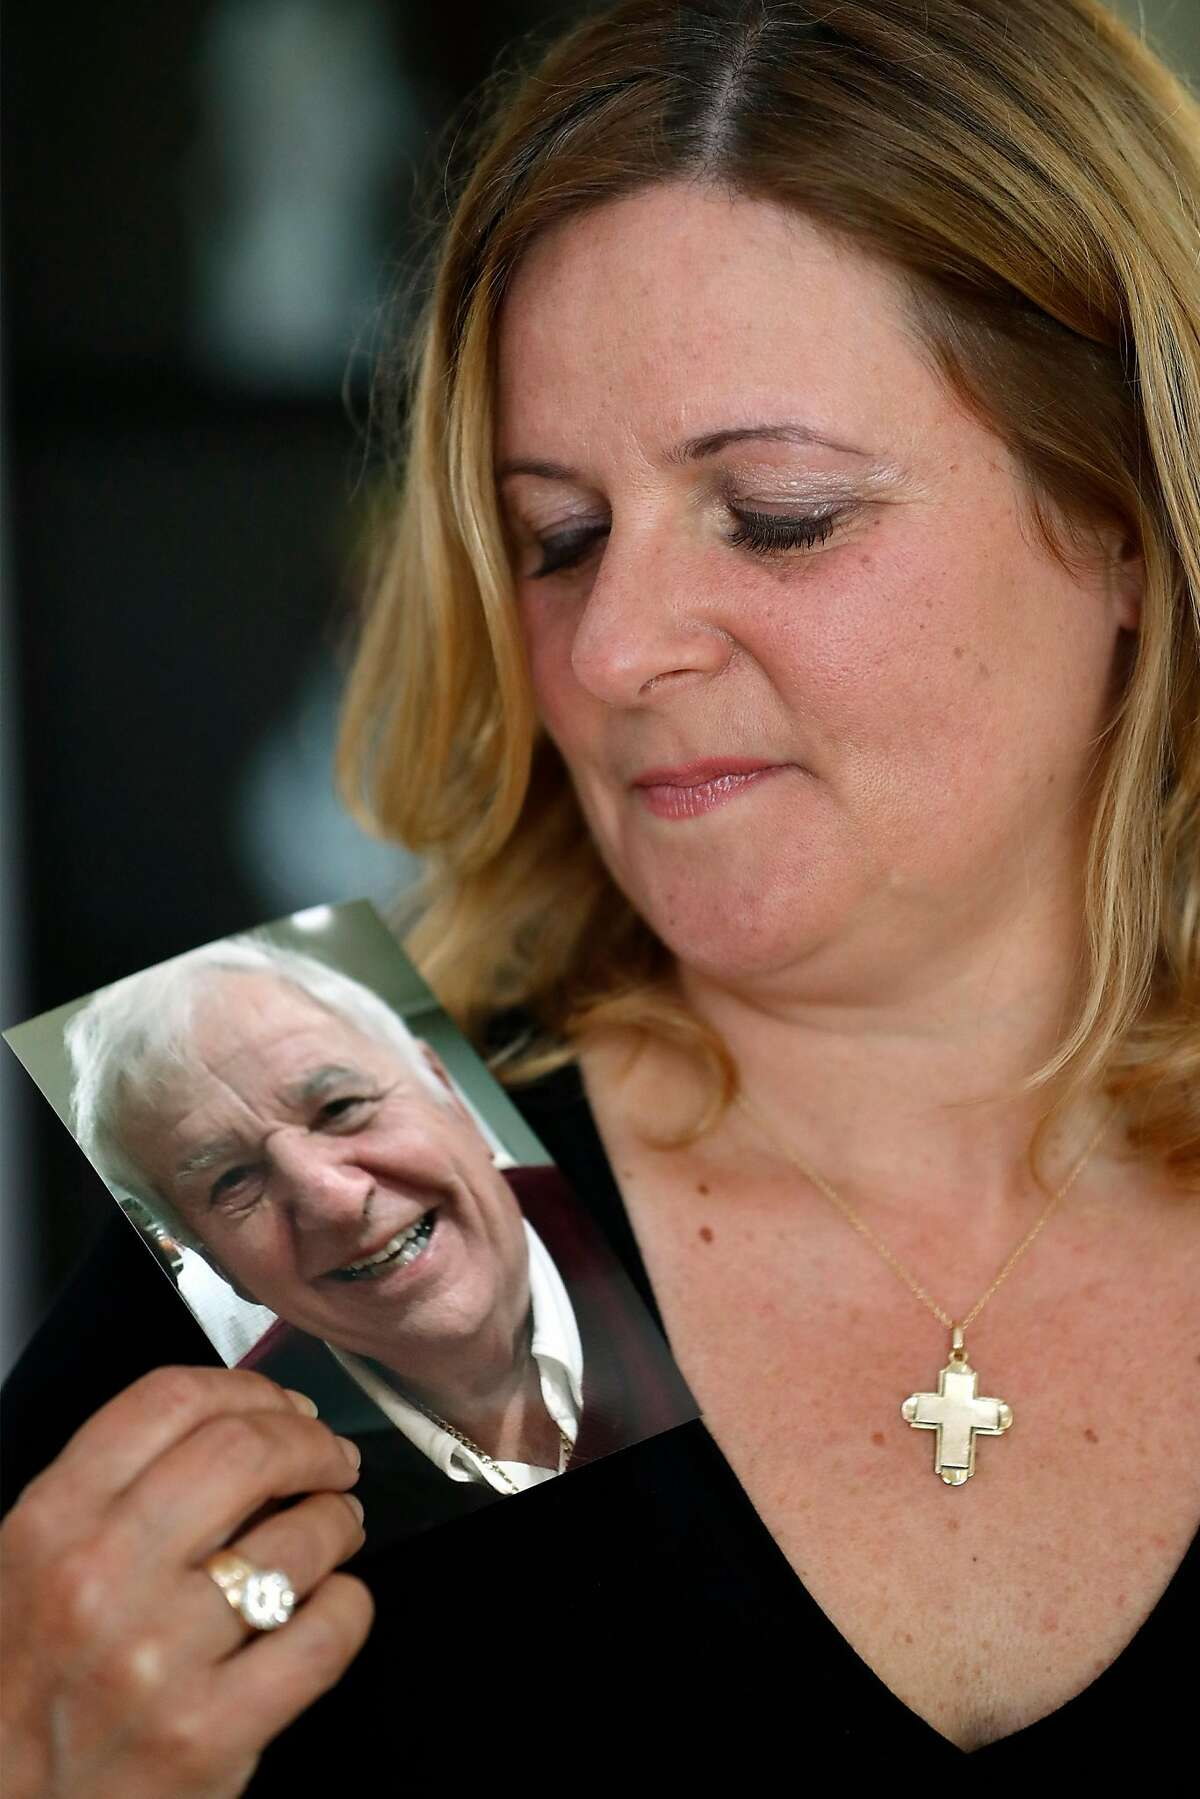 Tina Gullotta poses with a photo of her 87-year-old father, Harry Misthos in San Bruno, Calif., on Thursday, June 18, 2020. Misthos died from coronavirus earlier this year.